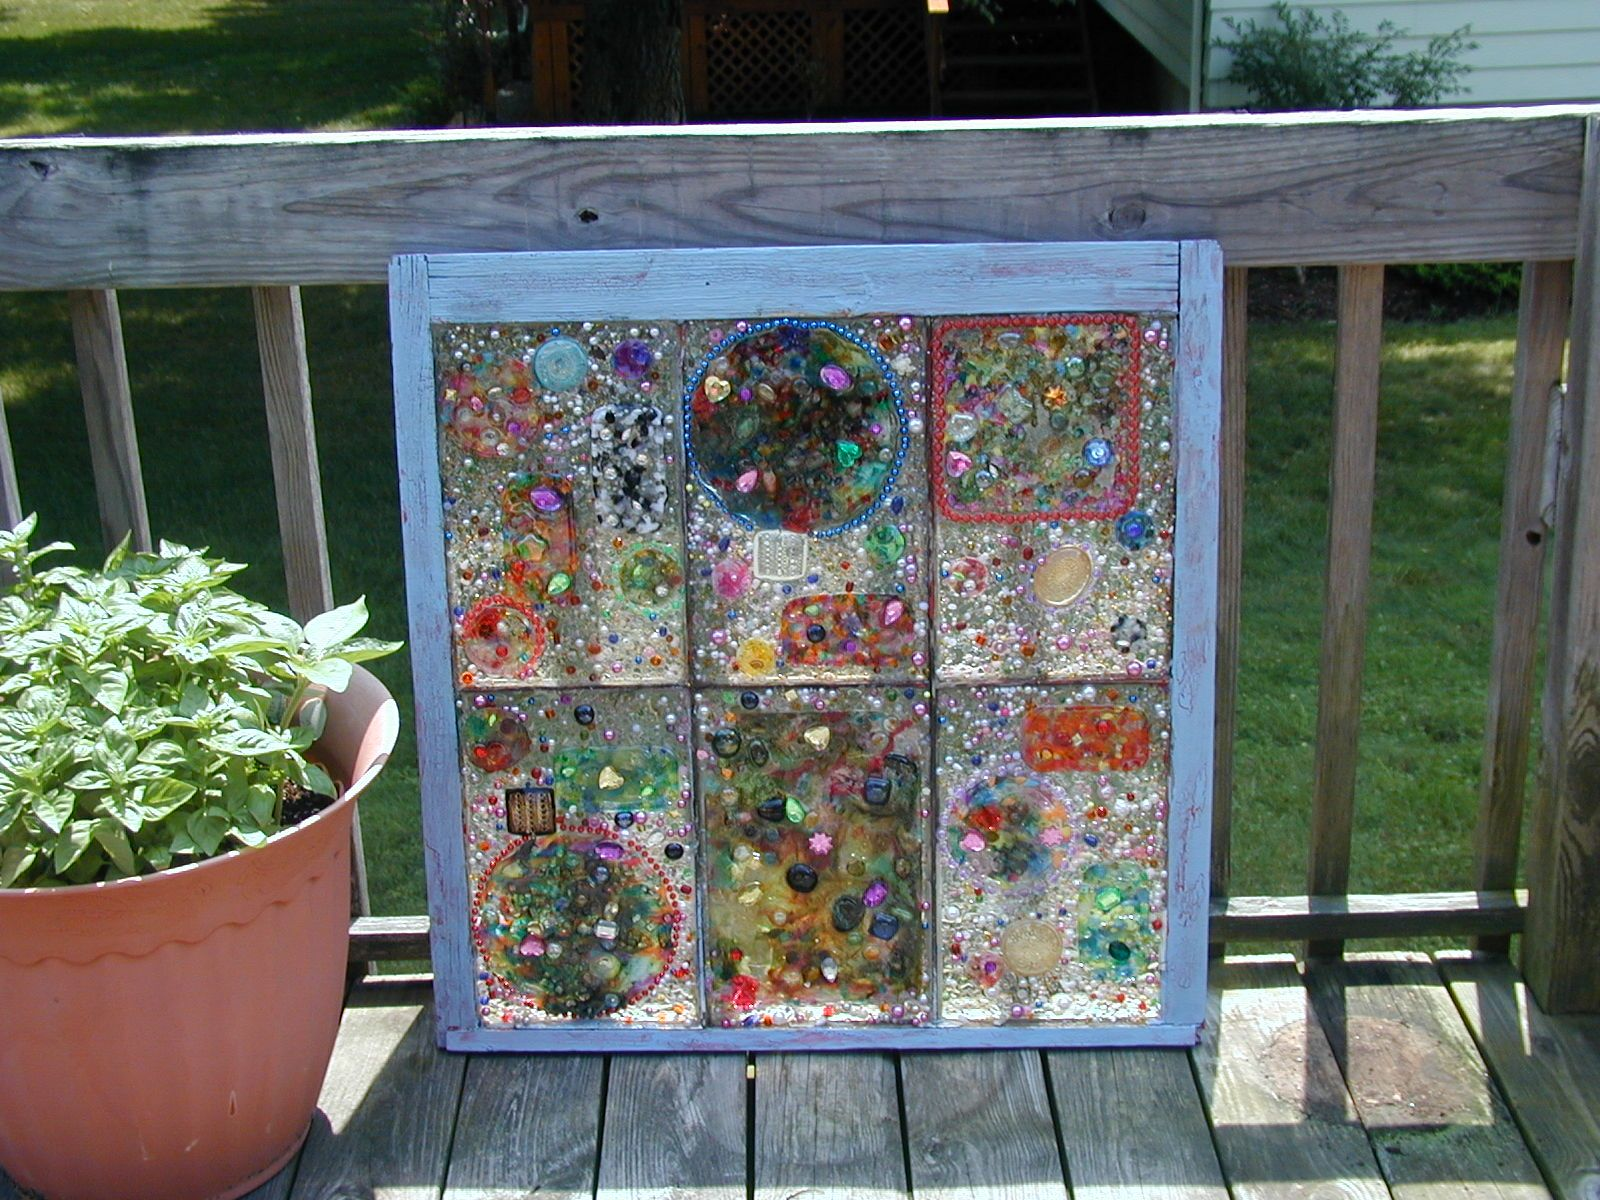 Resin for arts and crafts - Find This Pin And More On Resin Windows